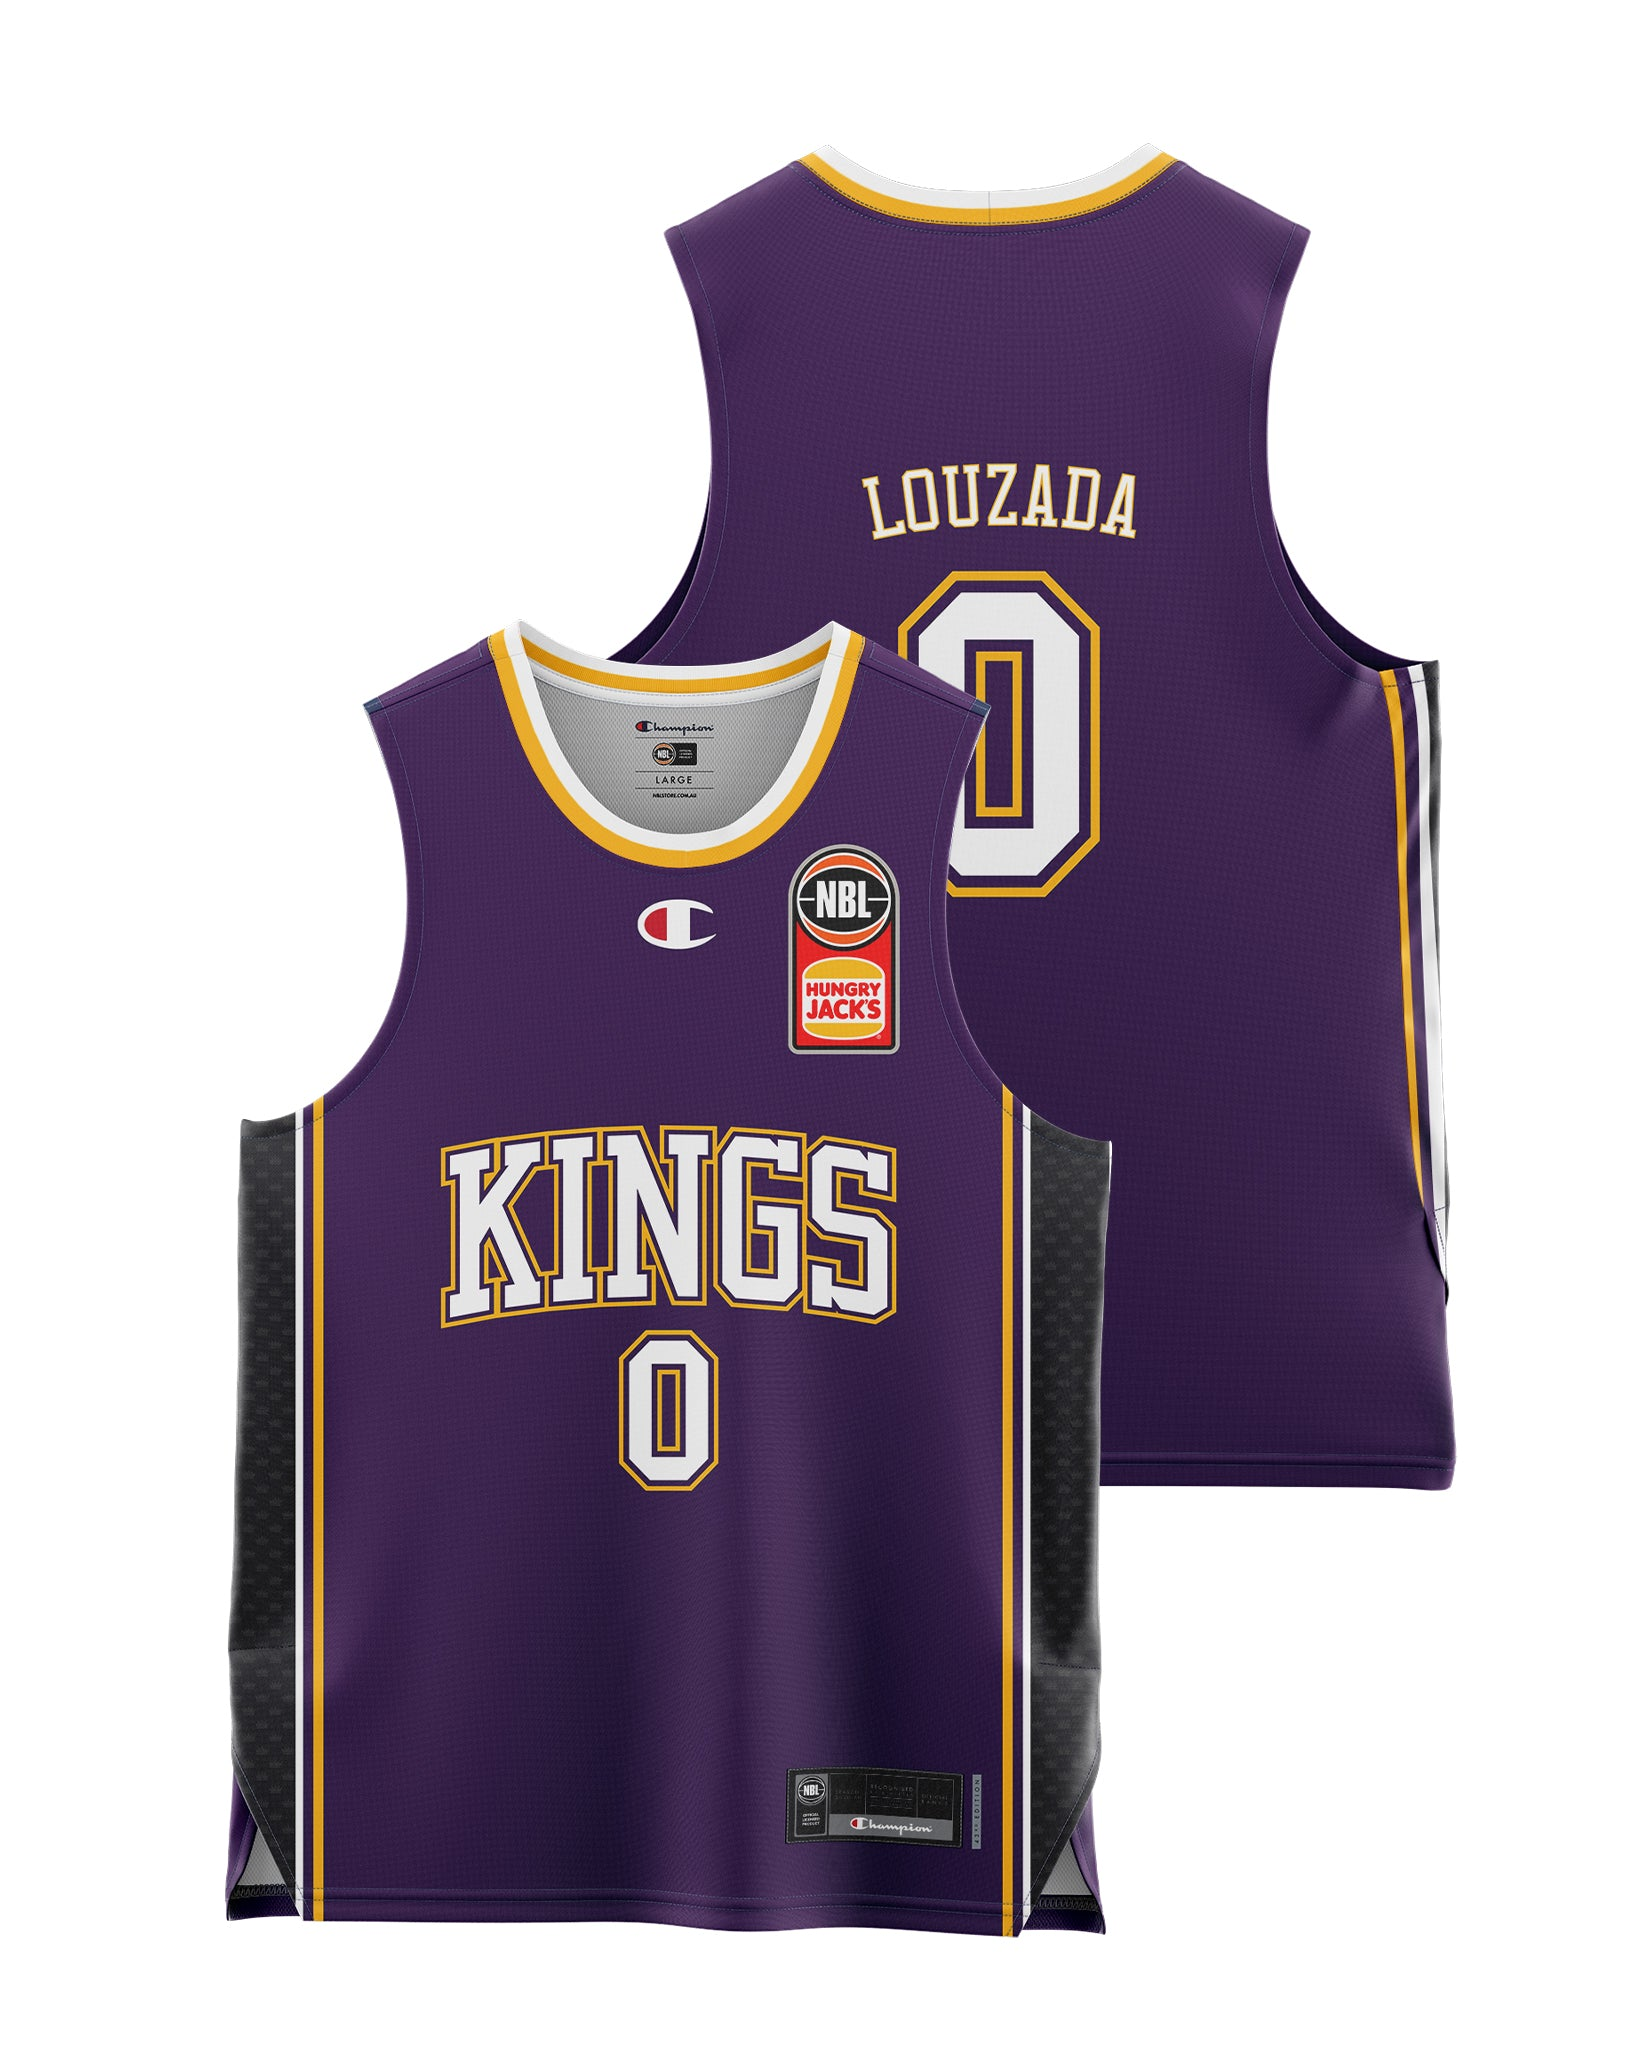 Sydney Kings 20/21 Youth Authentic Home Jersey - Didi Louzada